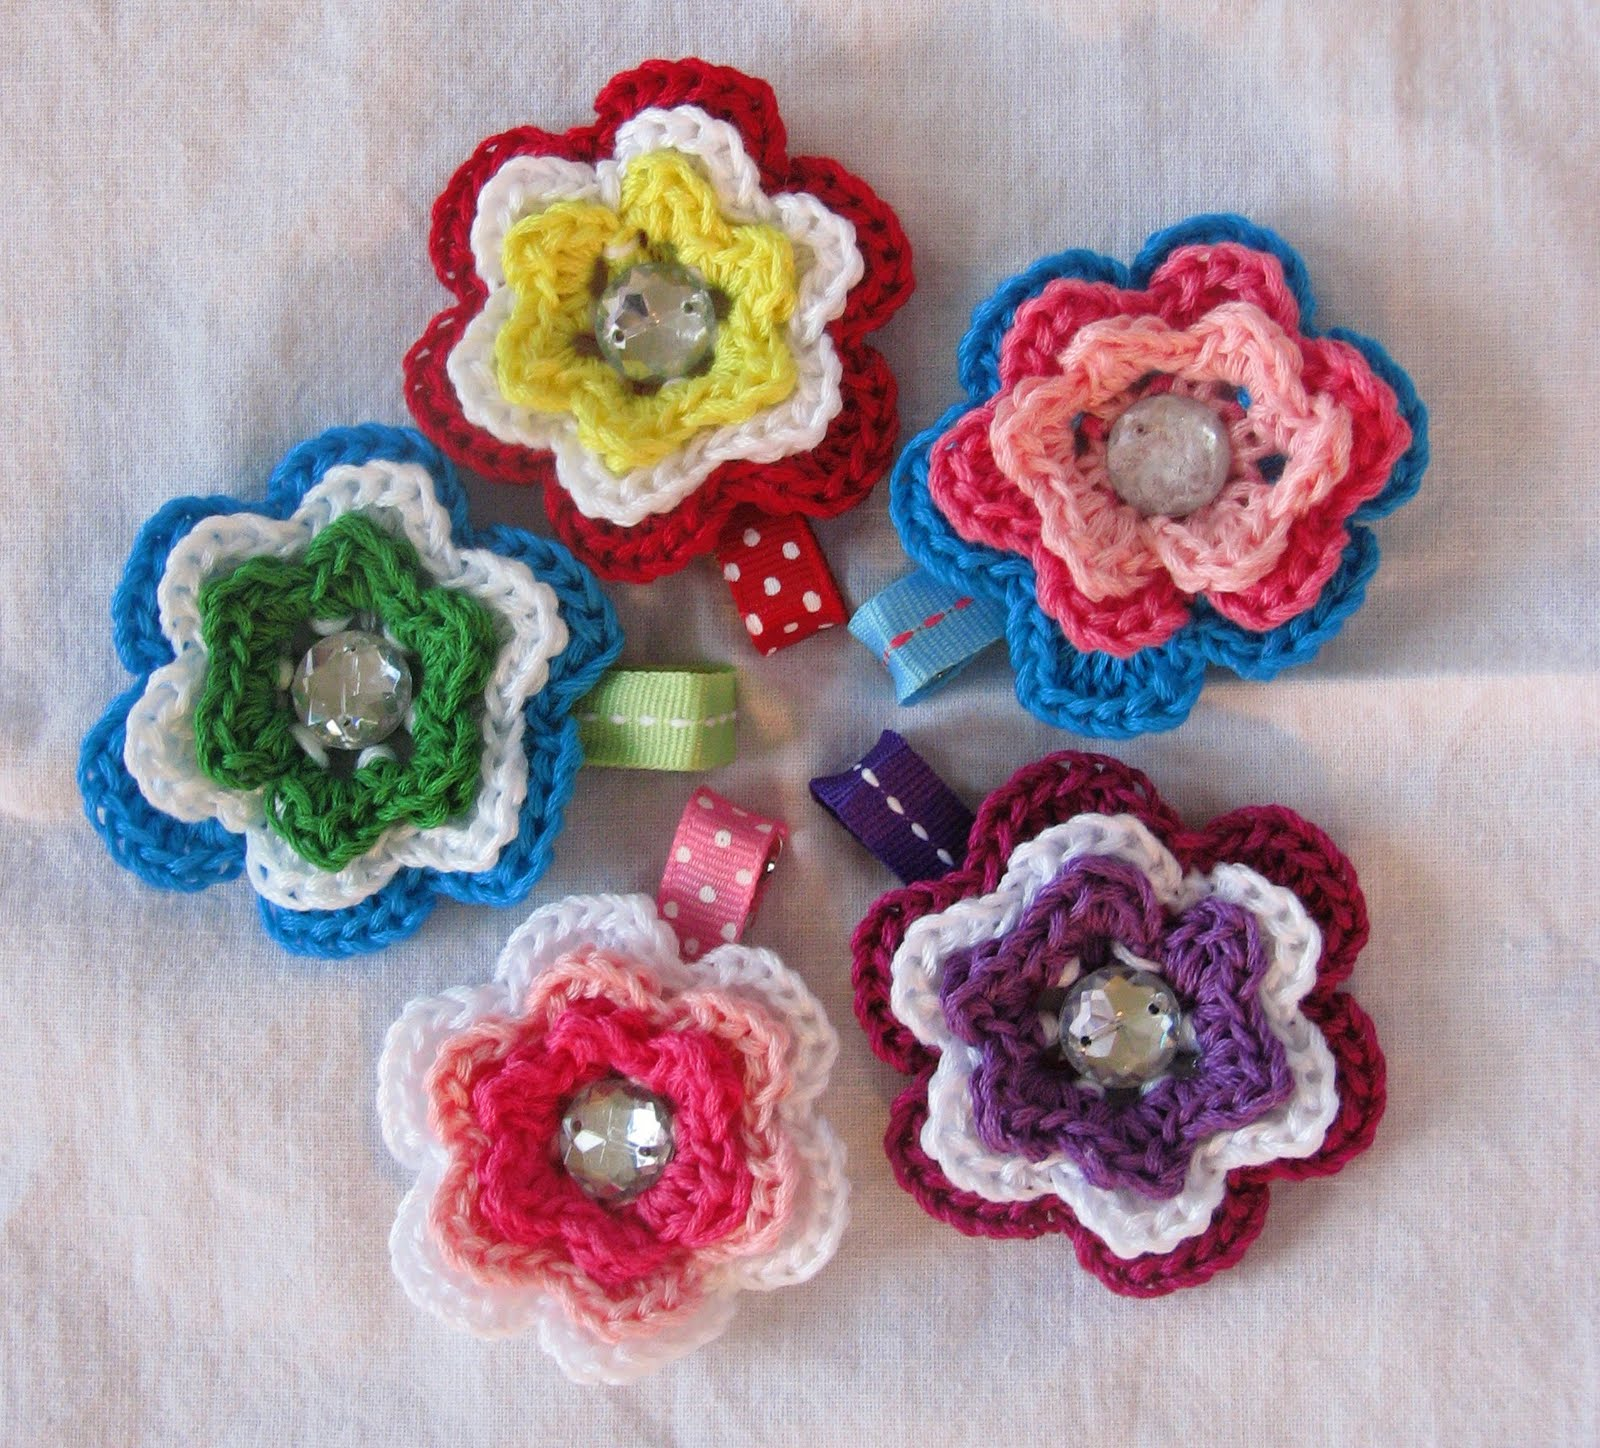 Stitches By Stacy: Crochet Flower Hair Clips